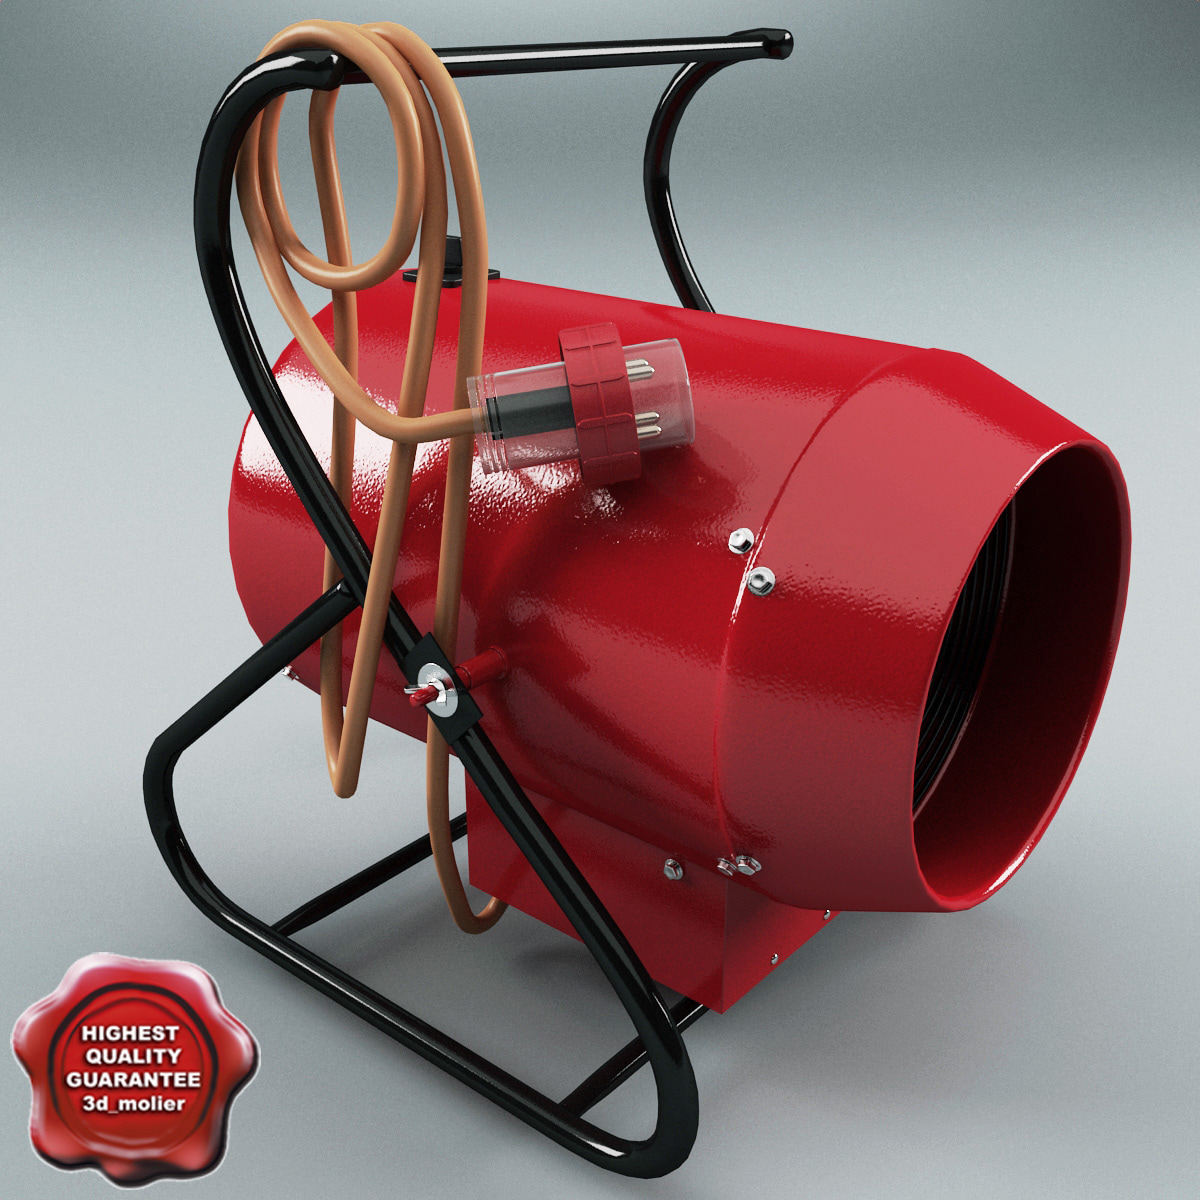 Industrial Heat Blower : Ds max electric portable heat blower